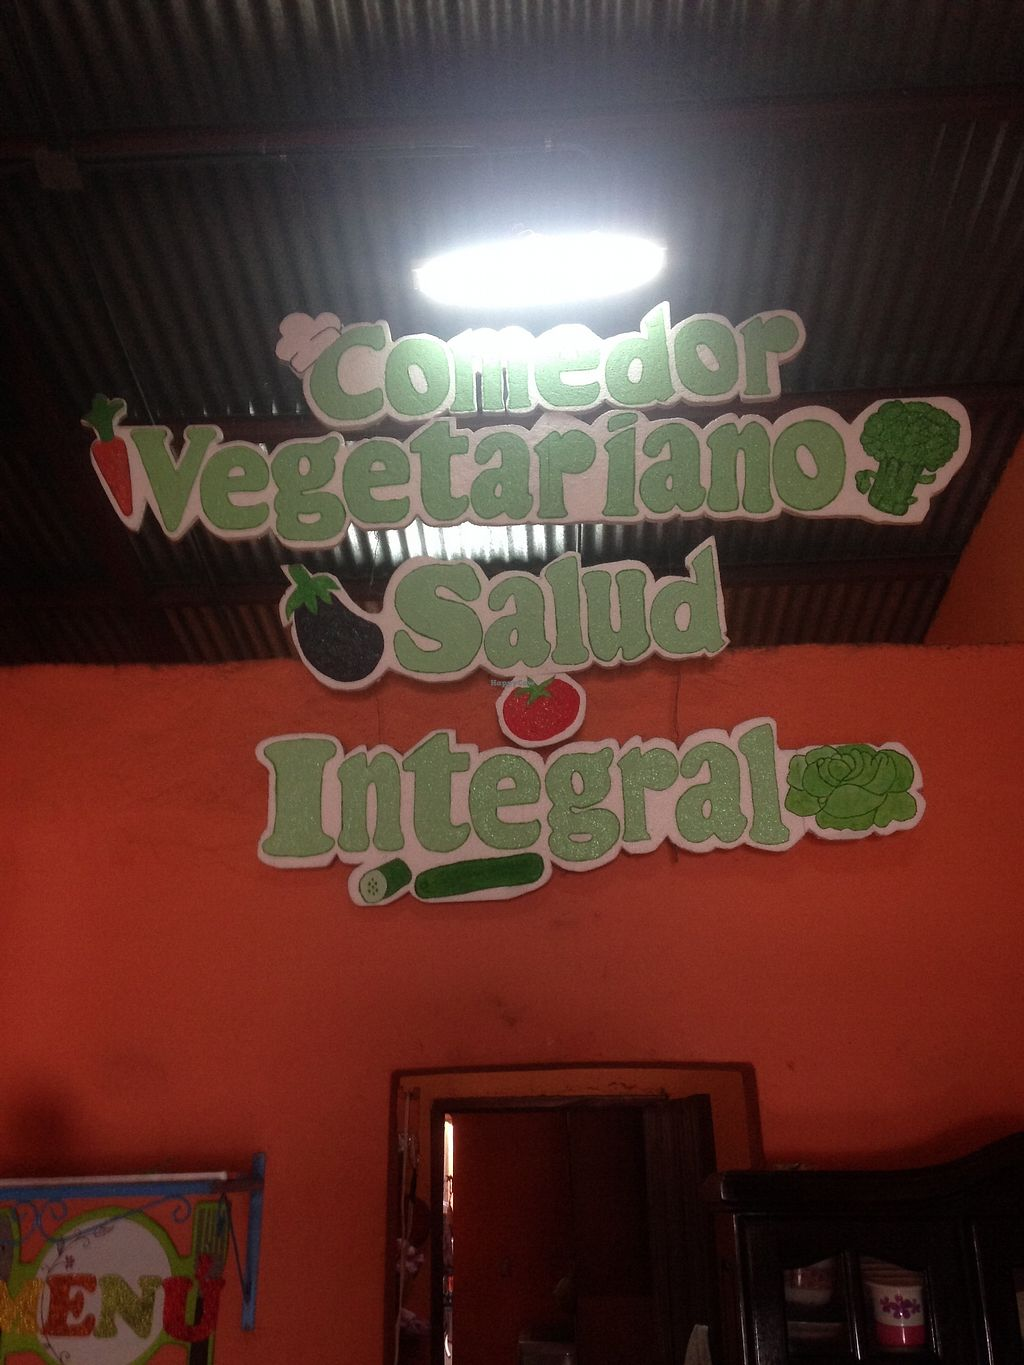 "Photo of Comedor Vegetariano Salud Integral  by <a href=""/members/profile/Stubler"" class=""title__title"" title=""Profile of member Stubler"">Stubler</a> <br/>Really friendly and welcoming hosts <br/> October 15, 2017  - <a href='/contact/abuse/image/102923/315514'>Report</a>"